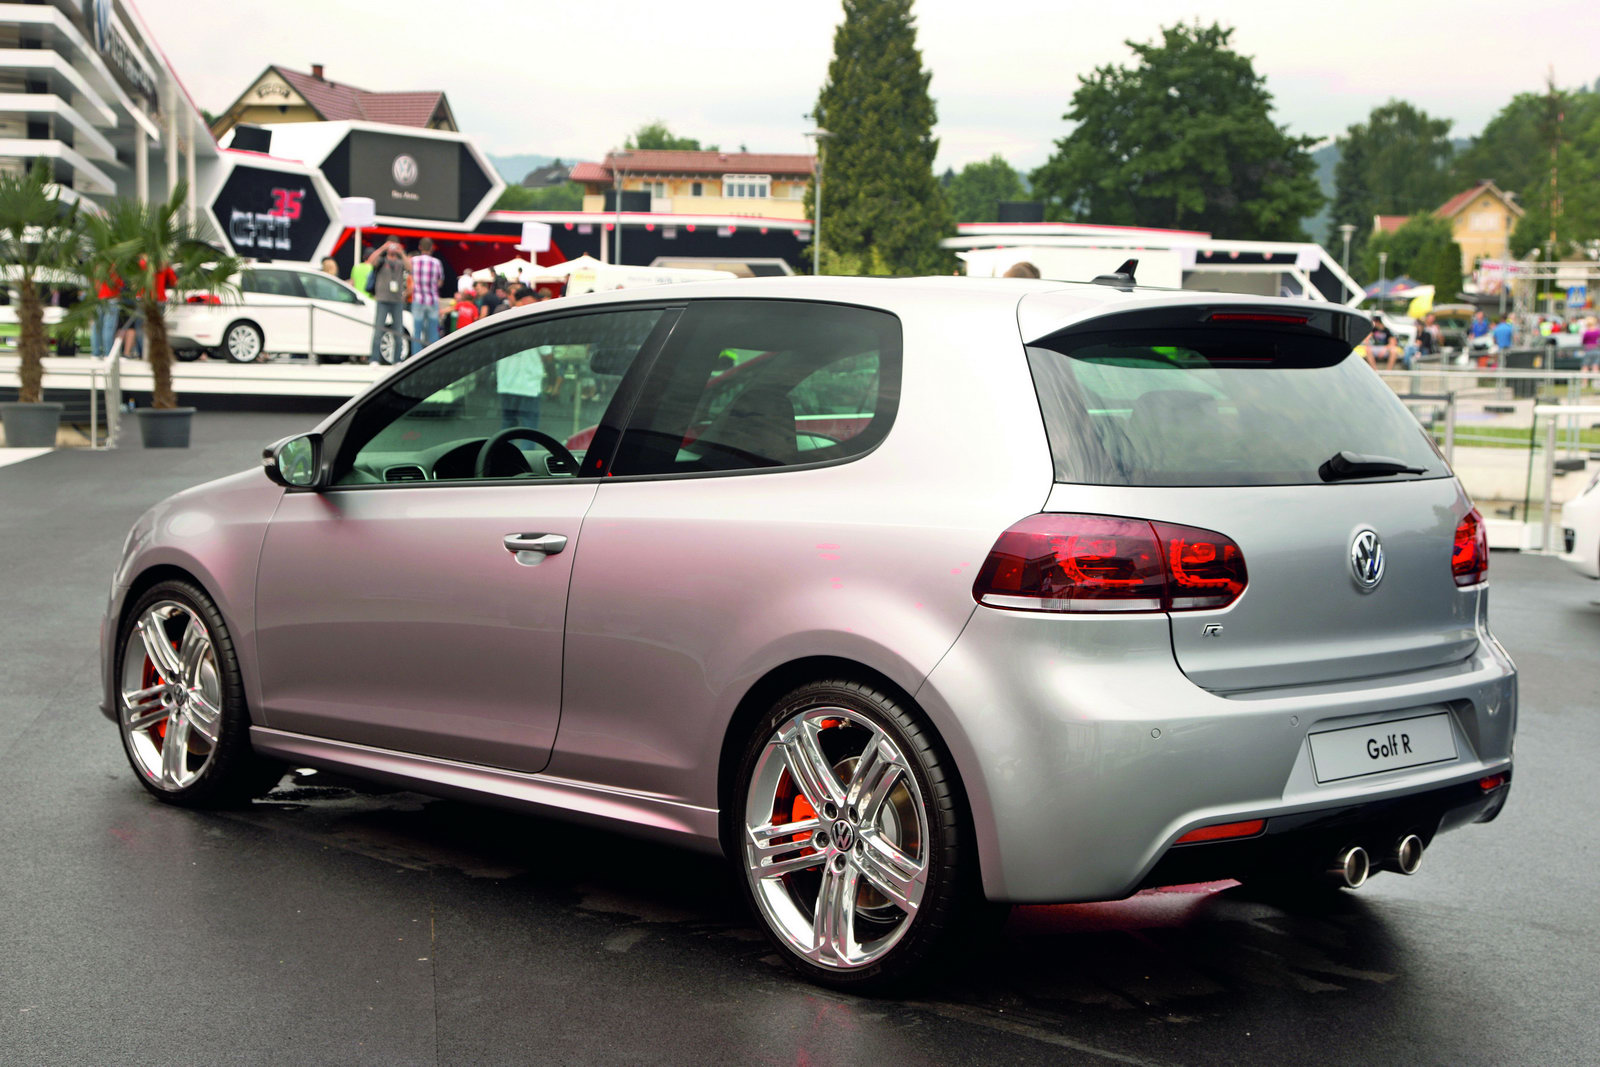 Two Volkswagen Golf R Color Concepts Arrive in Worthersee - autoevolution